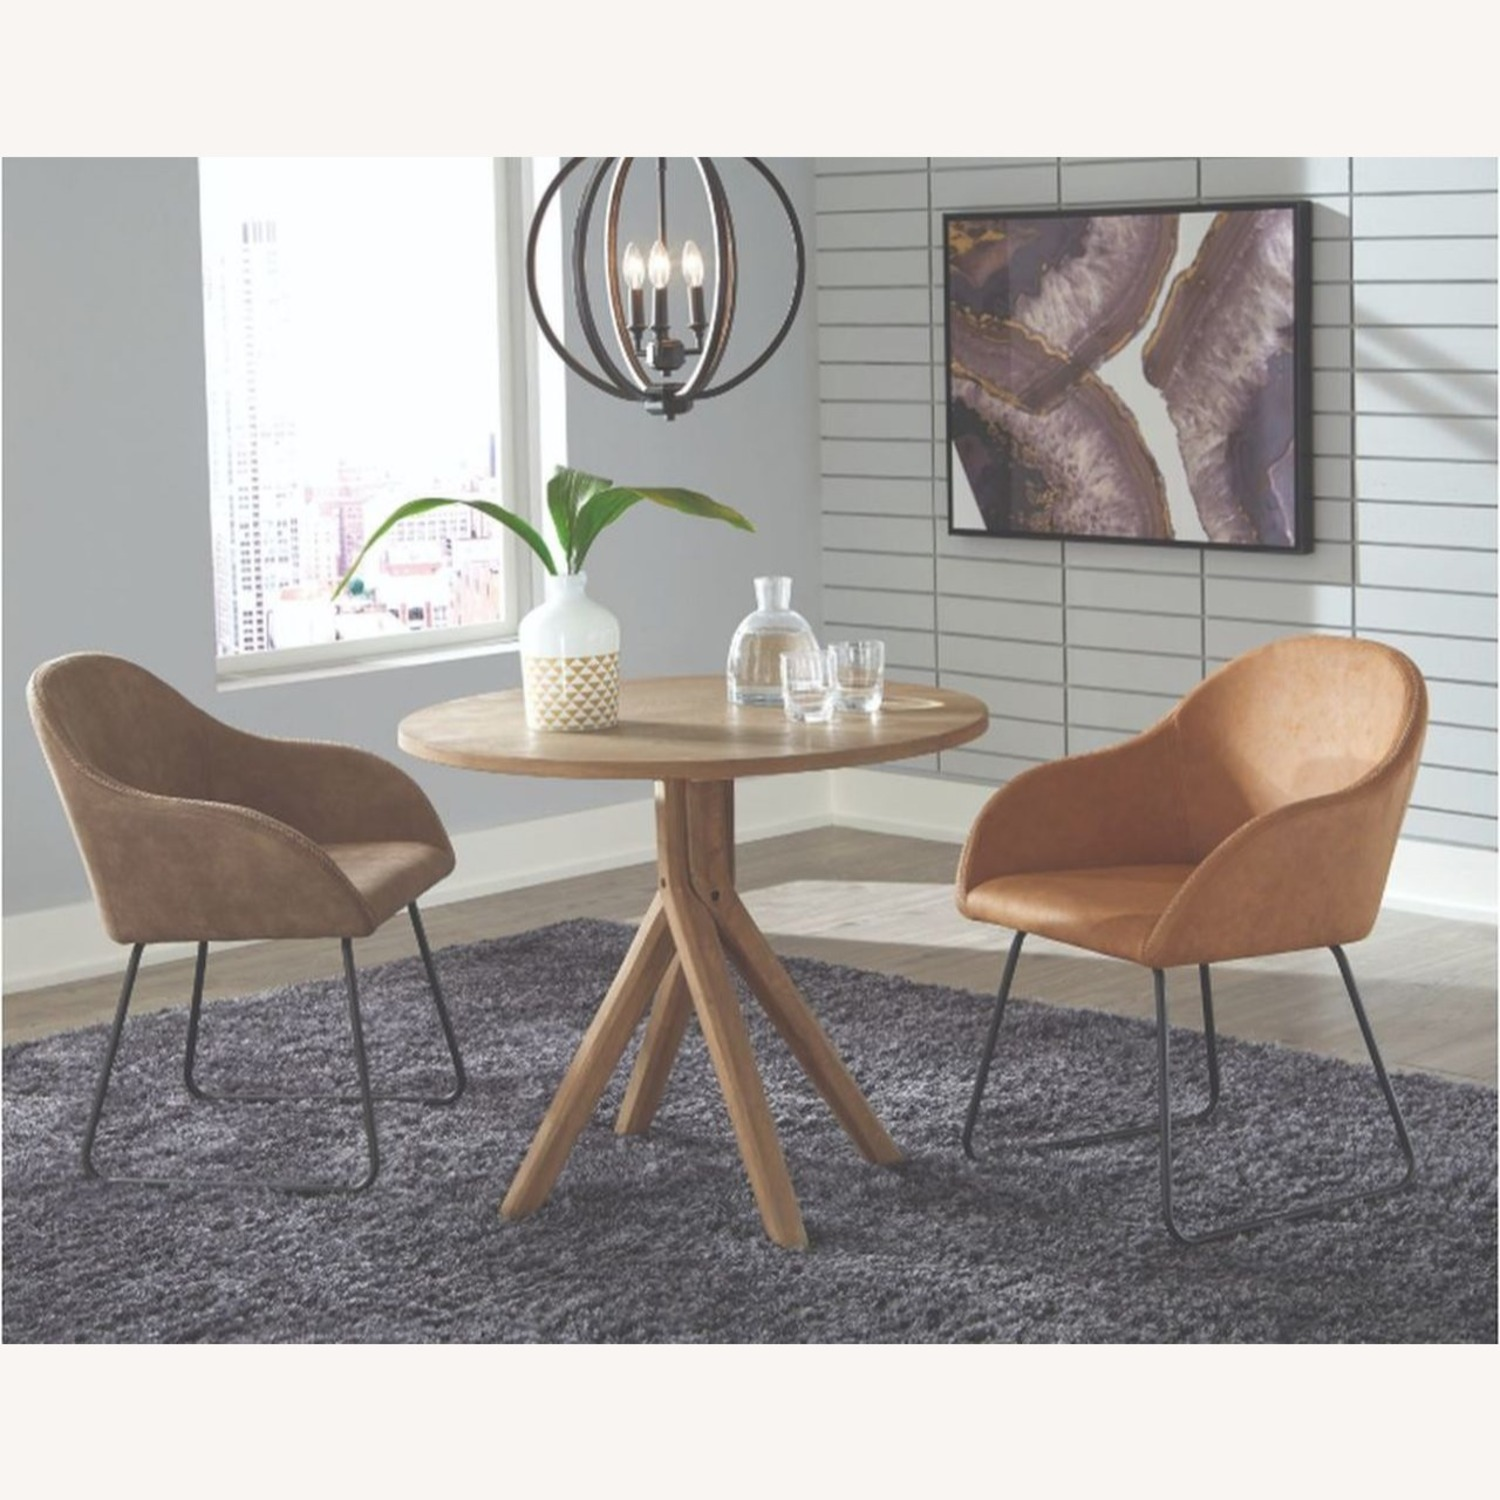 Classic Round Dining Table In Solid White Oak - image-2